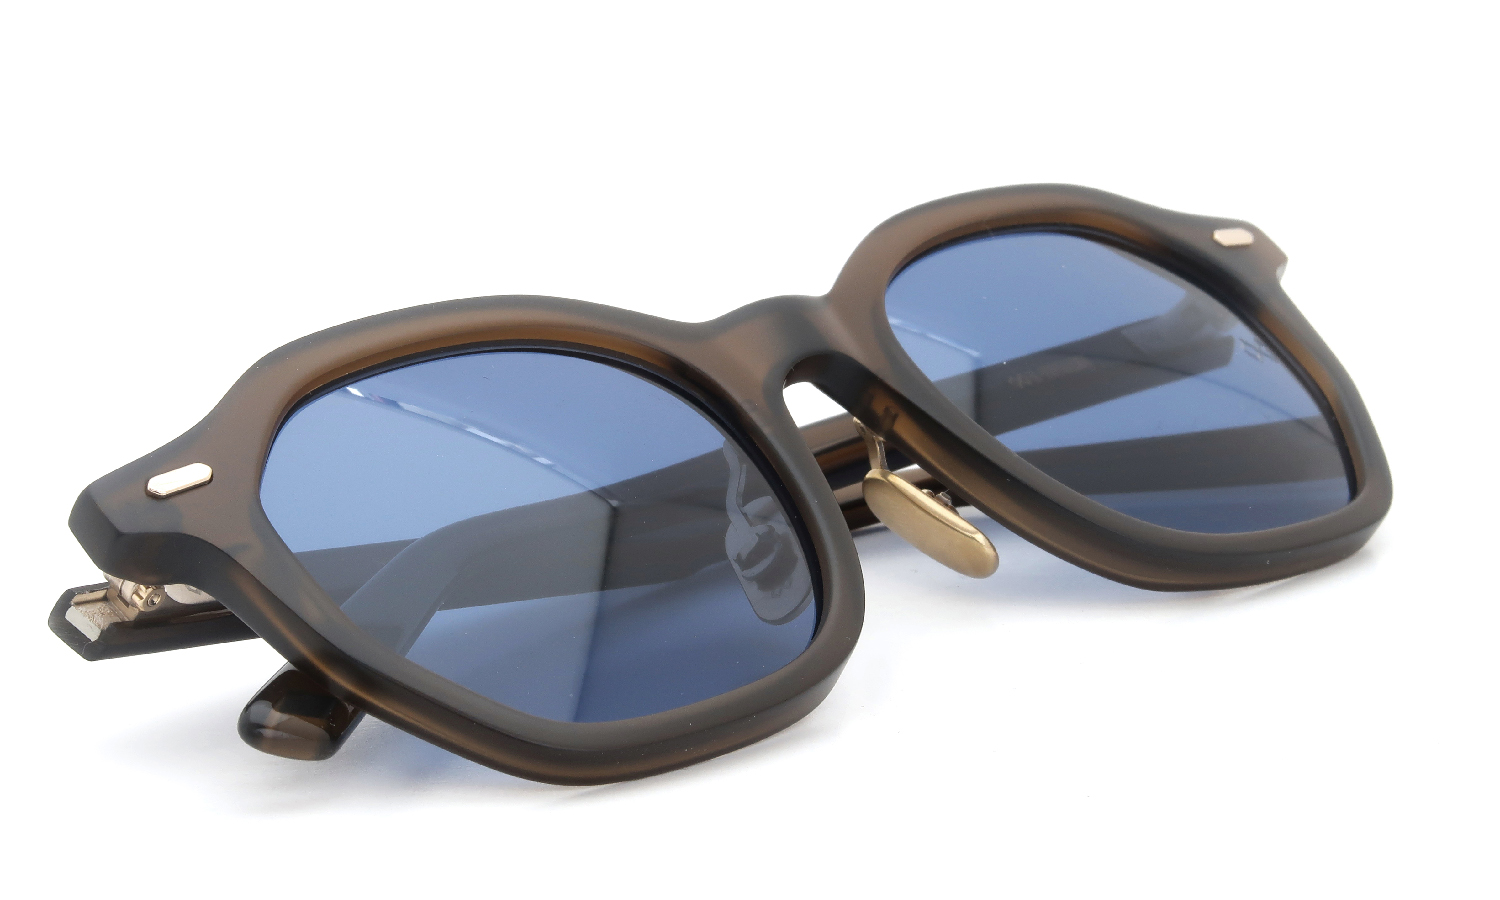 OG × OLIVER GOLDSMITH Re:BETSY 49 SG リ:ベッツィ 13